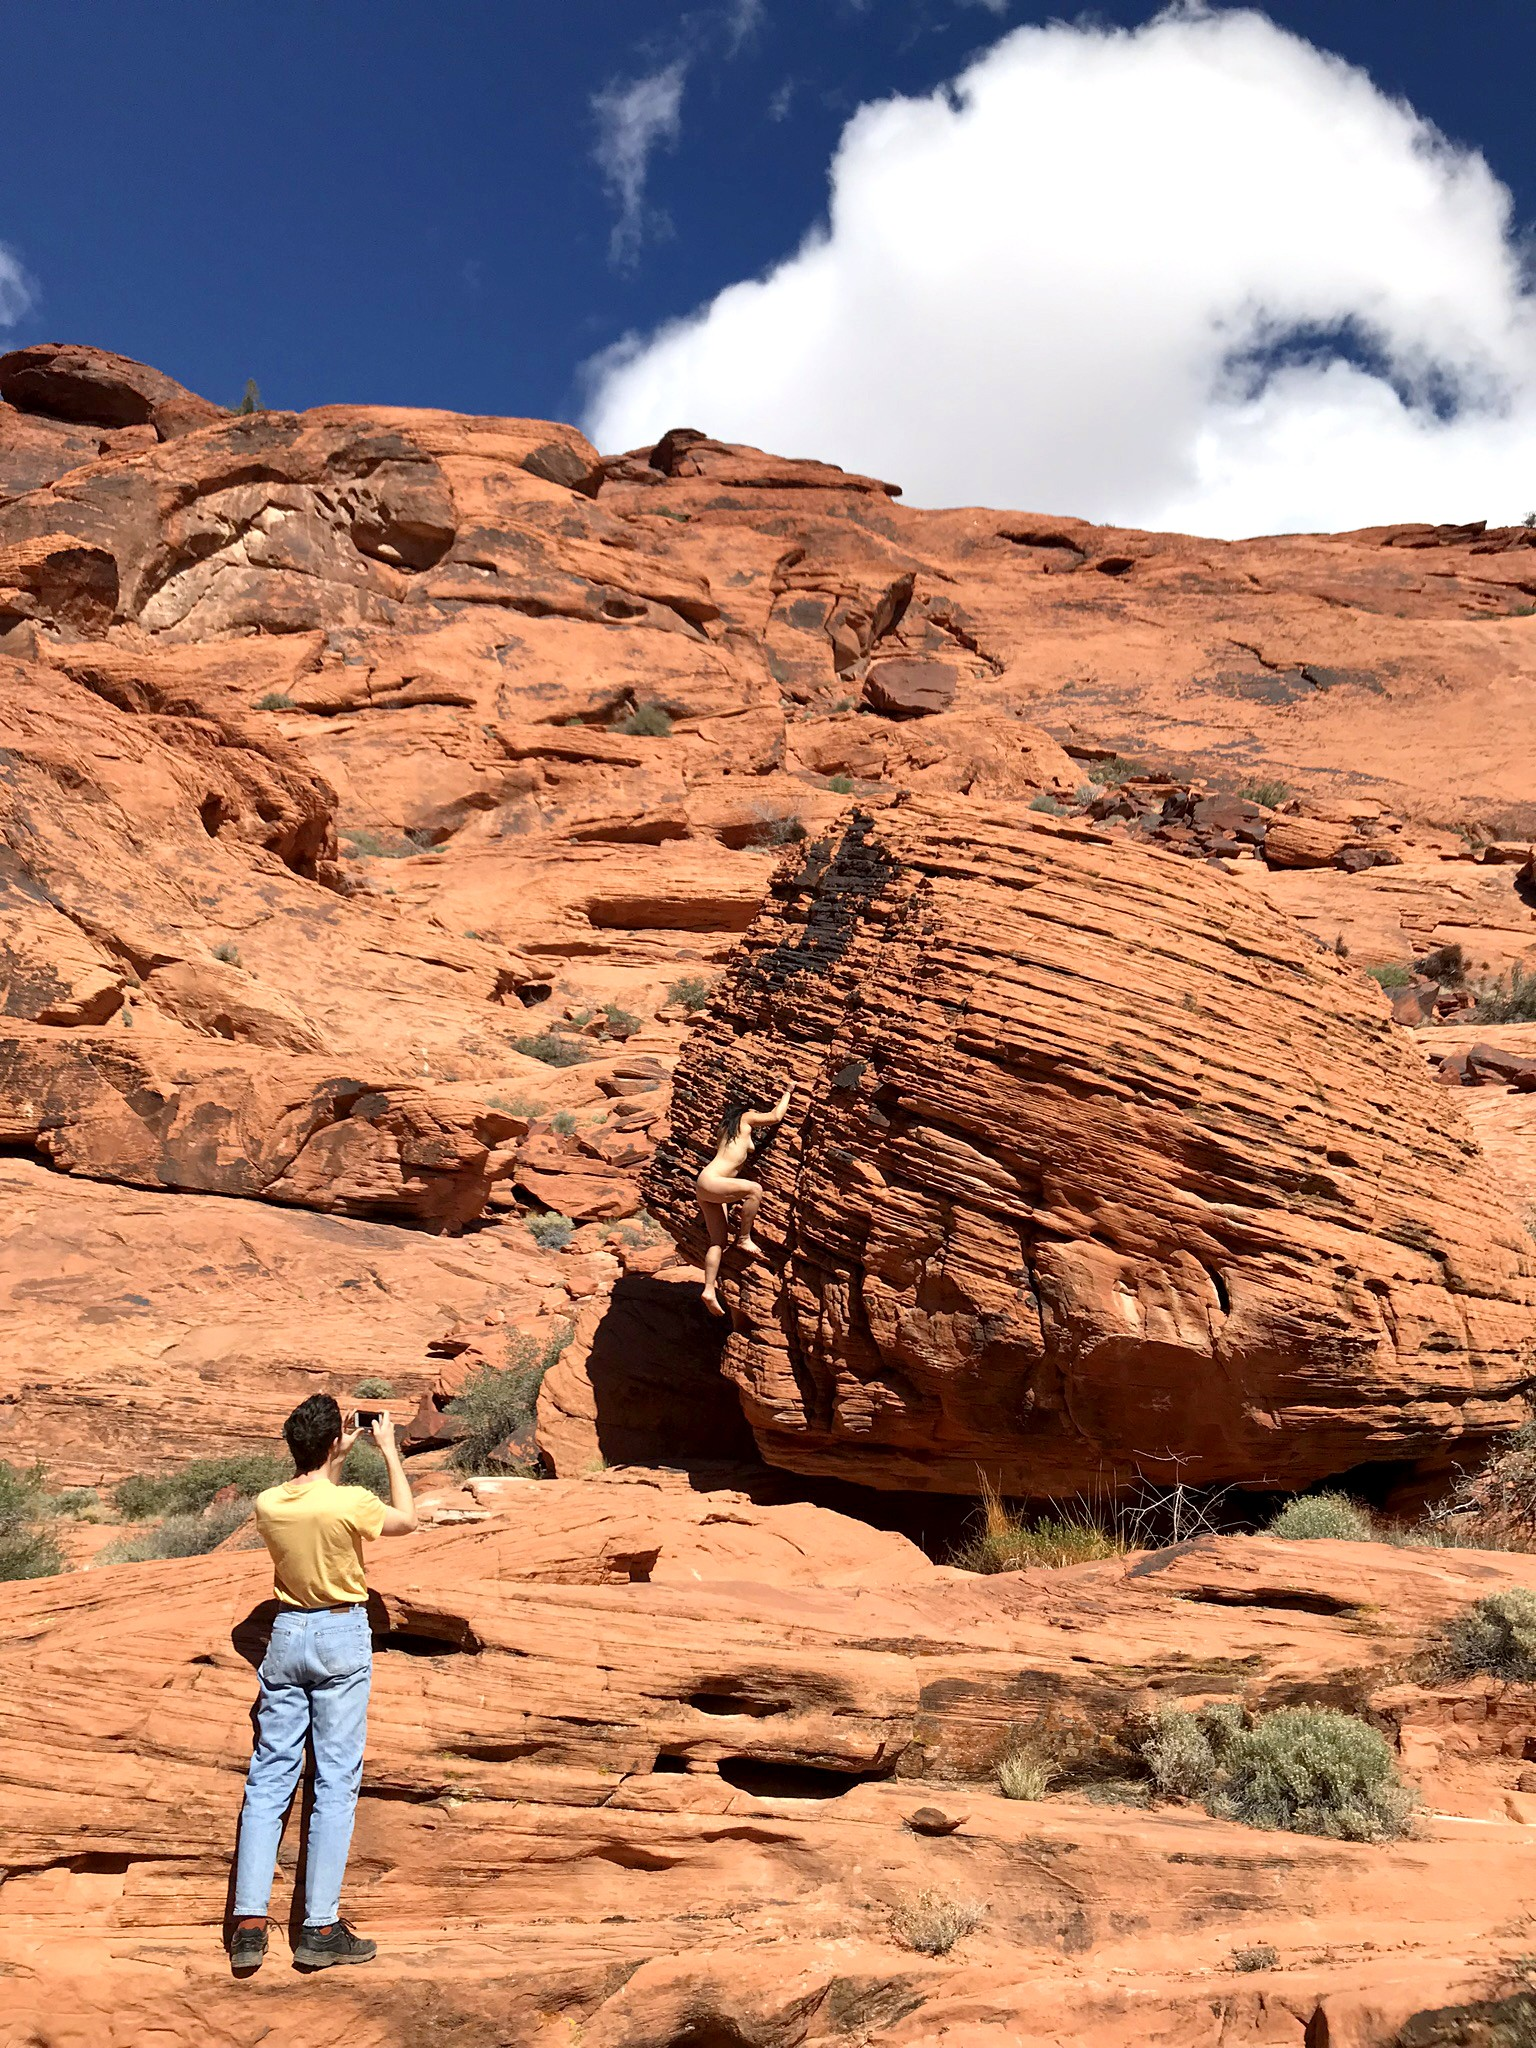 Photograph of Nevada canyons. 3/4 of image are bright red rocks. Figure in bottom left corner has back towards viewer and is taking picture of nude woman climbing boulder in right side of photograph. Sky is blue with clouds.